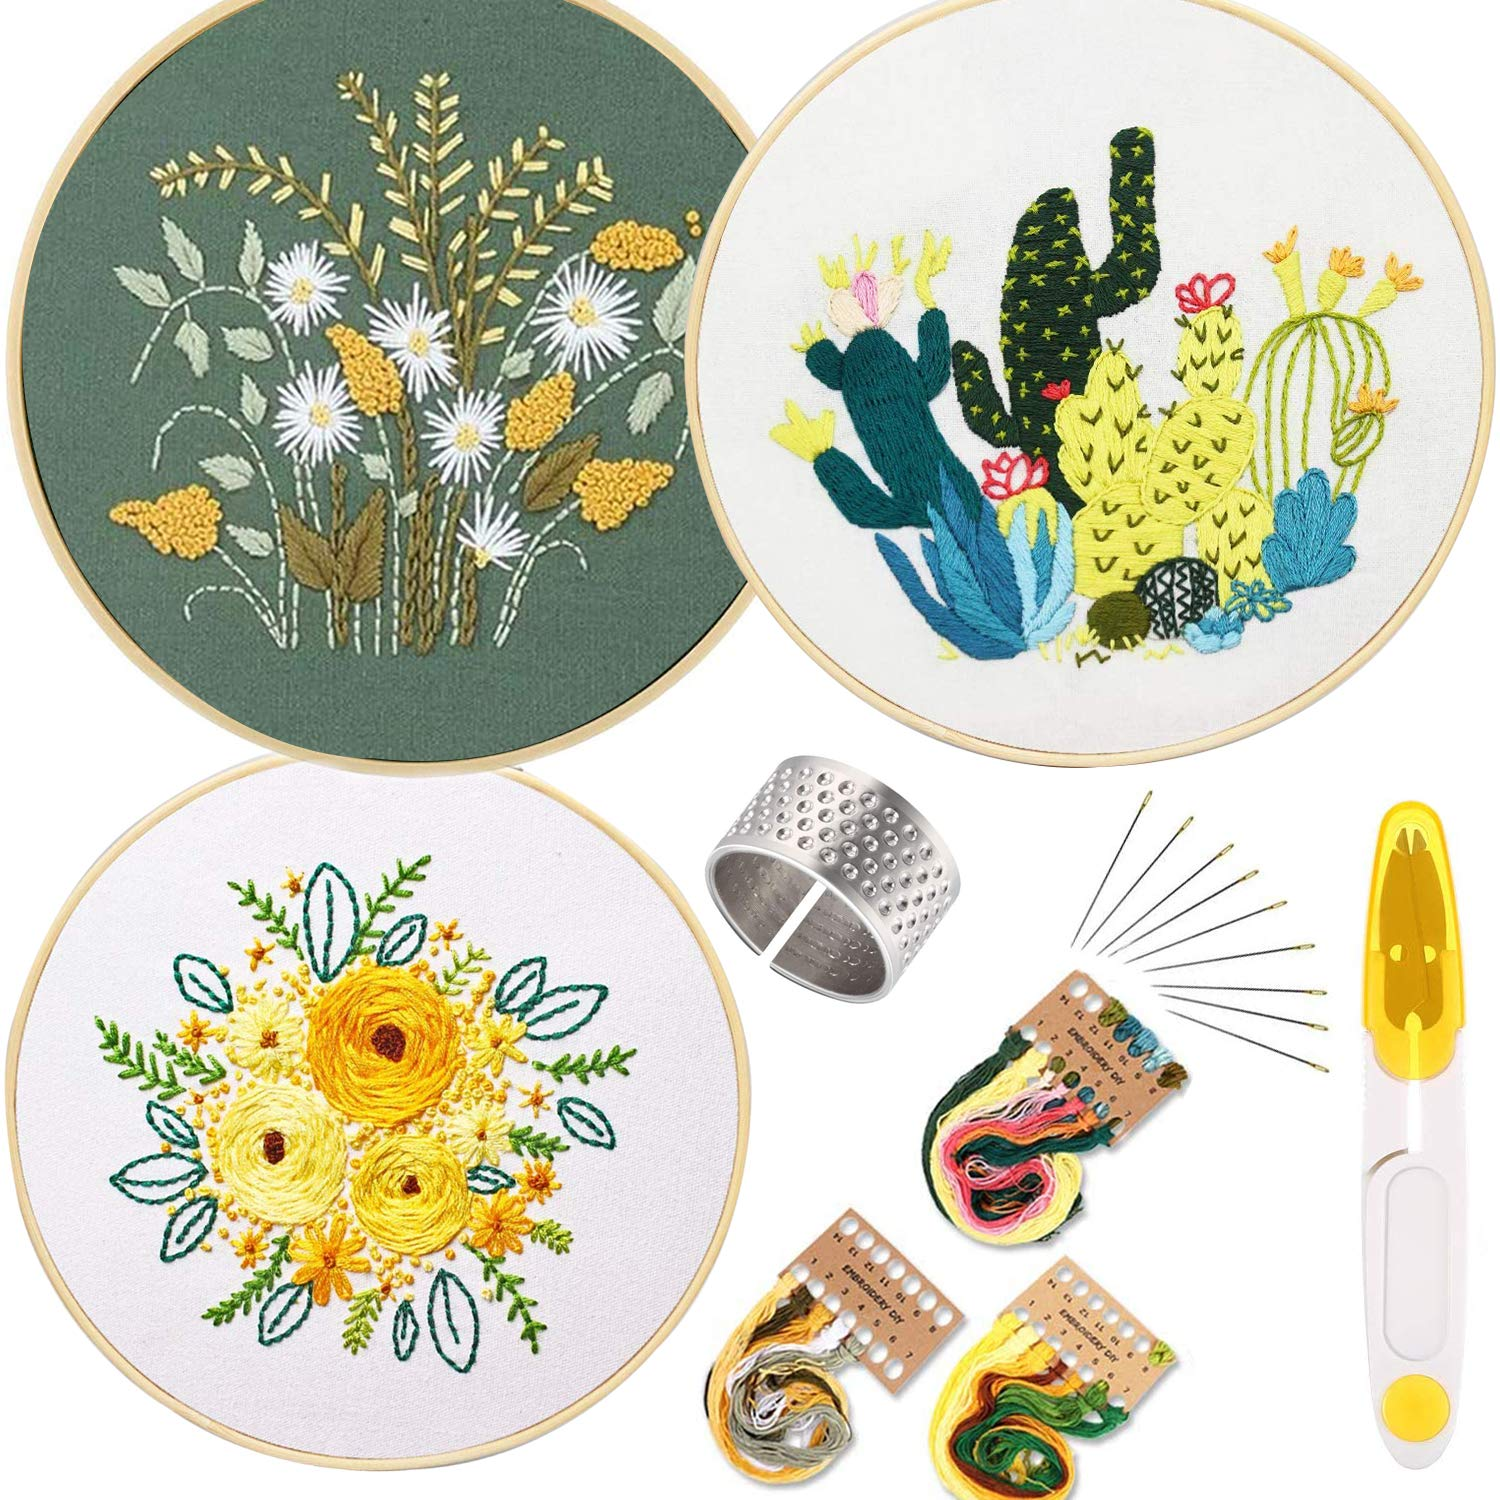 3 Pack Embroidery Cross Stitch Kits for Beginners, Full Range of Stamped Fabric Patterns Embroidery Starter Kit with 3 Pcs Plant Pattern, 1 pcs Embroidery Hoop, Color Threads Tools Kit, 1 pcs Thimble